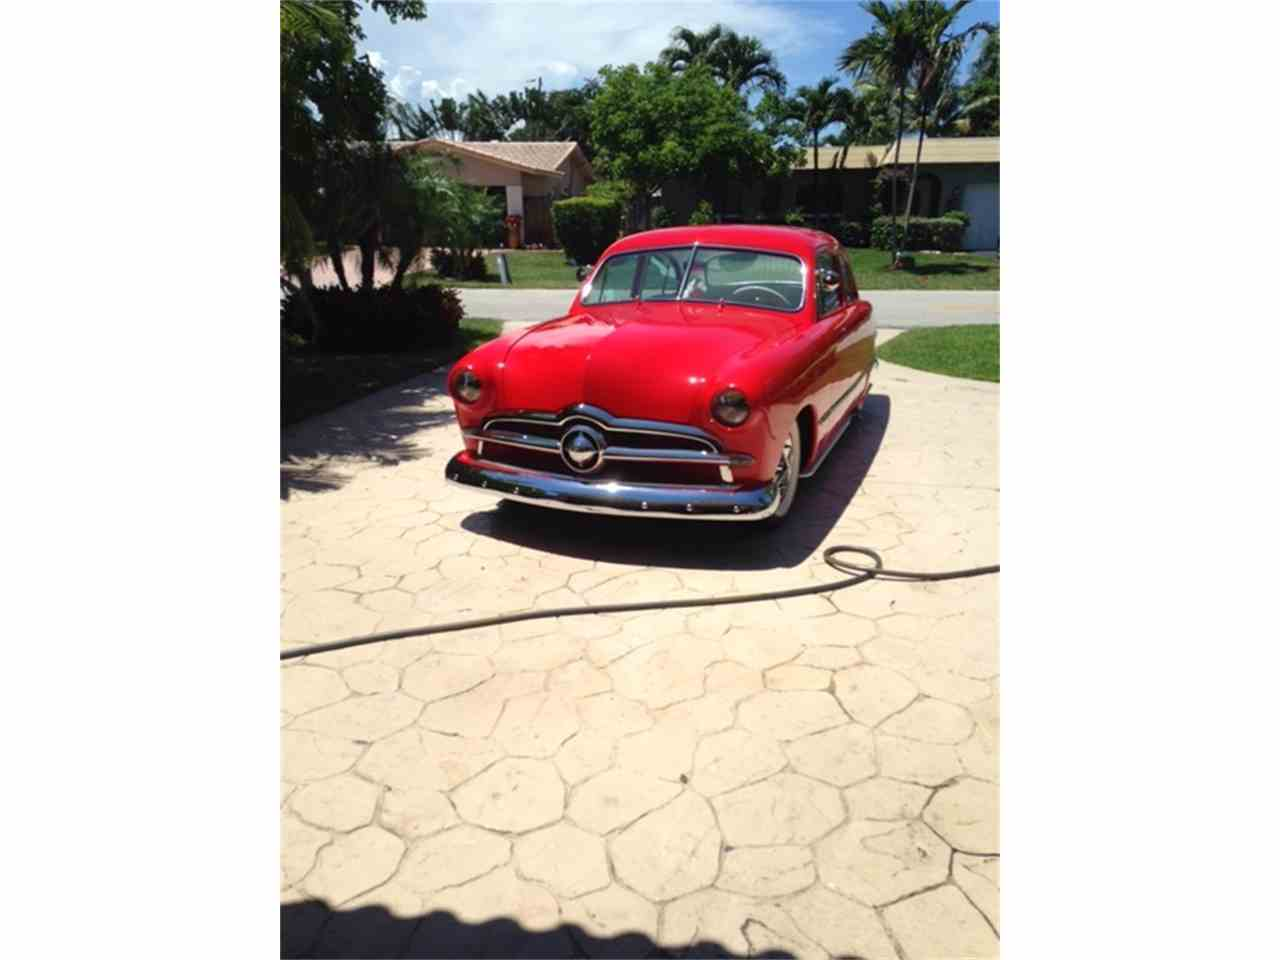 Large Picture of '49 Ford Custom - $26,500.00 Offered by a Private Seller - IYVP